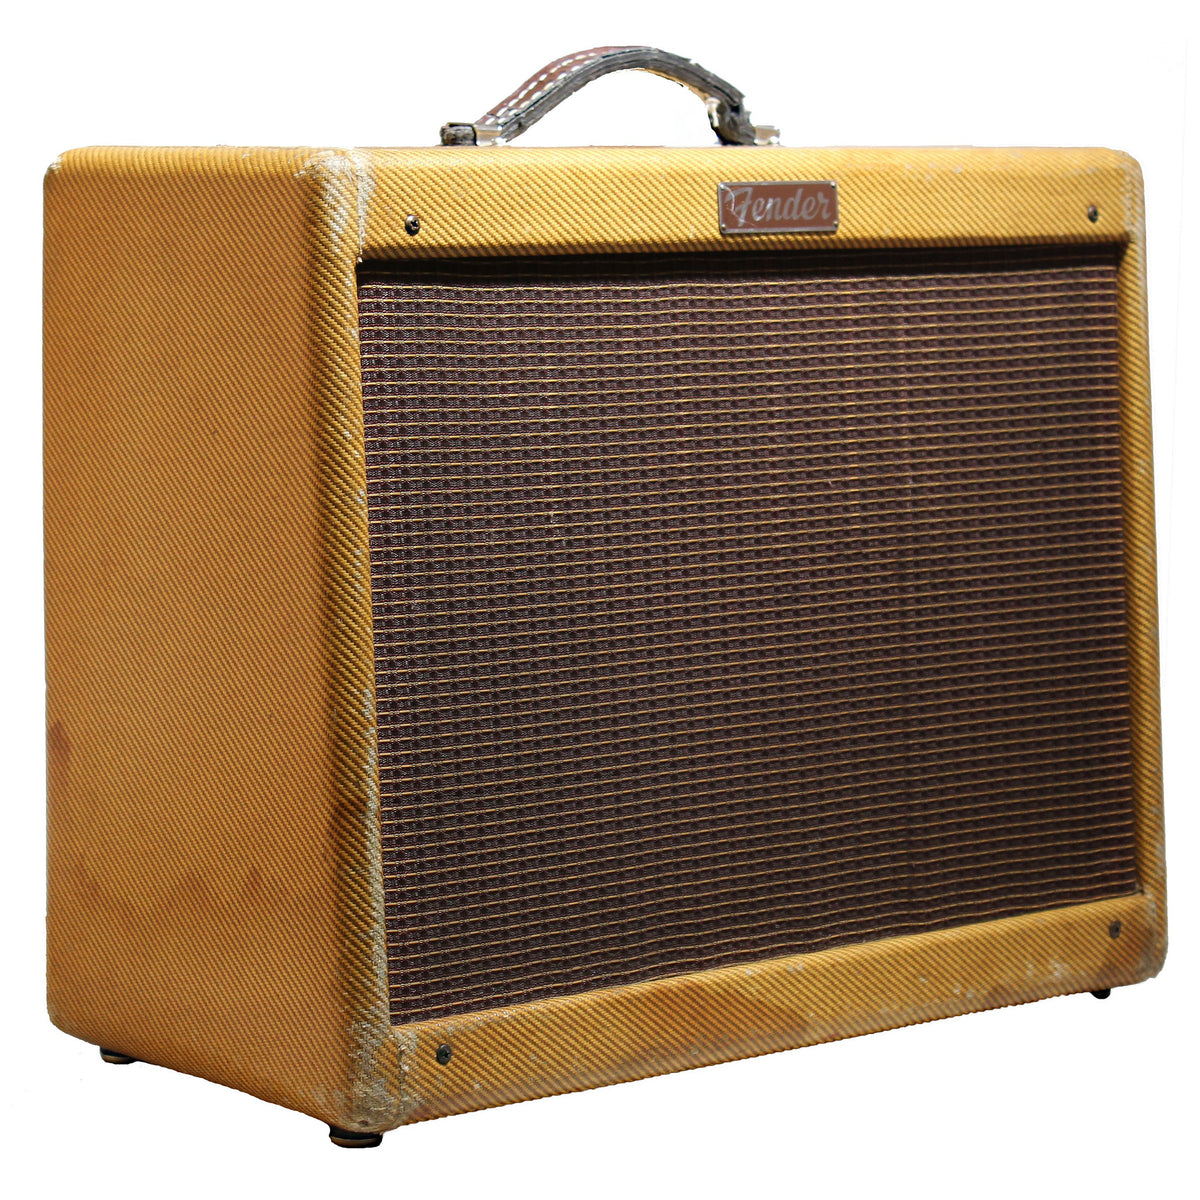 1956 Fender Deluxe Tweed Amp - Garrett Park Guitars  - 1